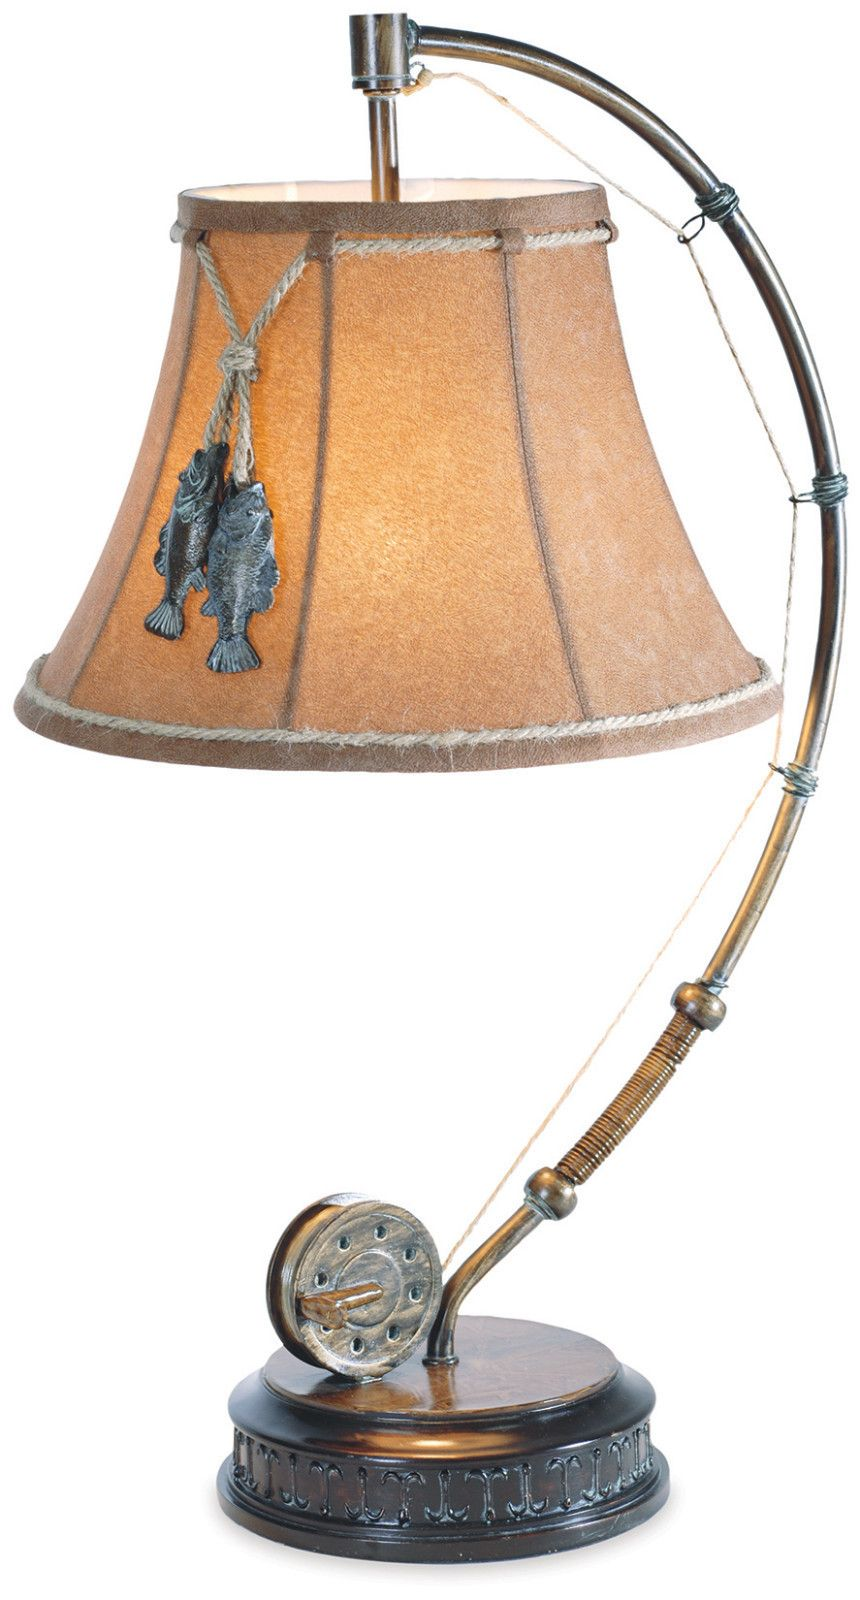 Fishing Table Lamp Rod Reel Wood Metal Catch Of The Day Rustic Nautical Table Lamp Lamp Modern Lamp